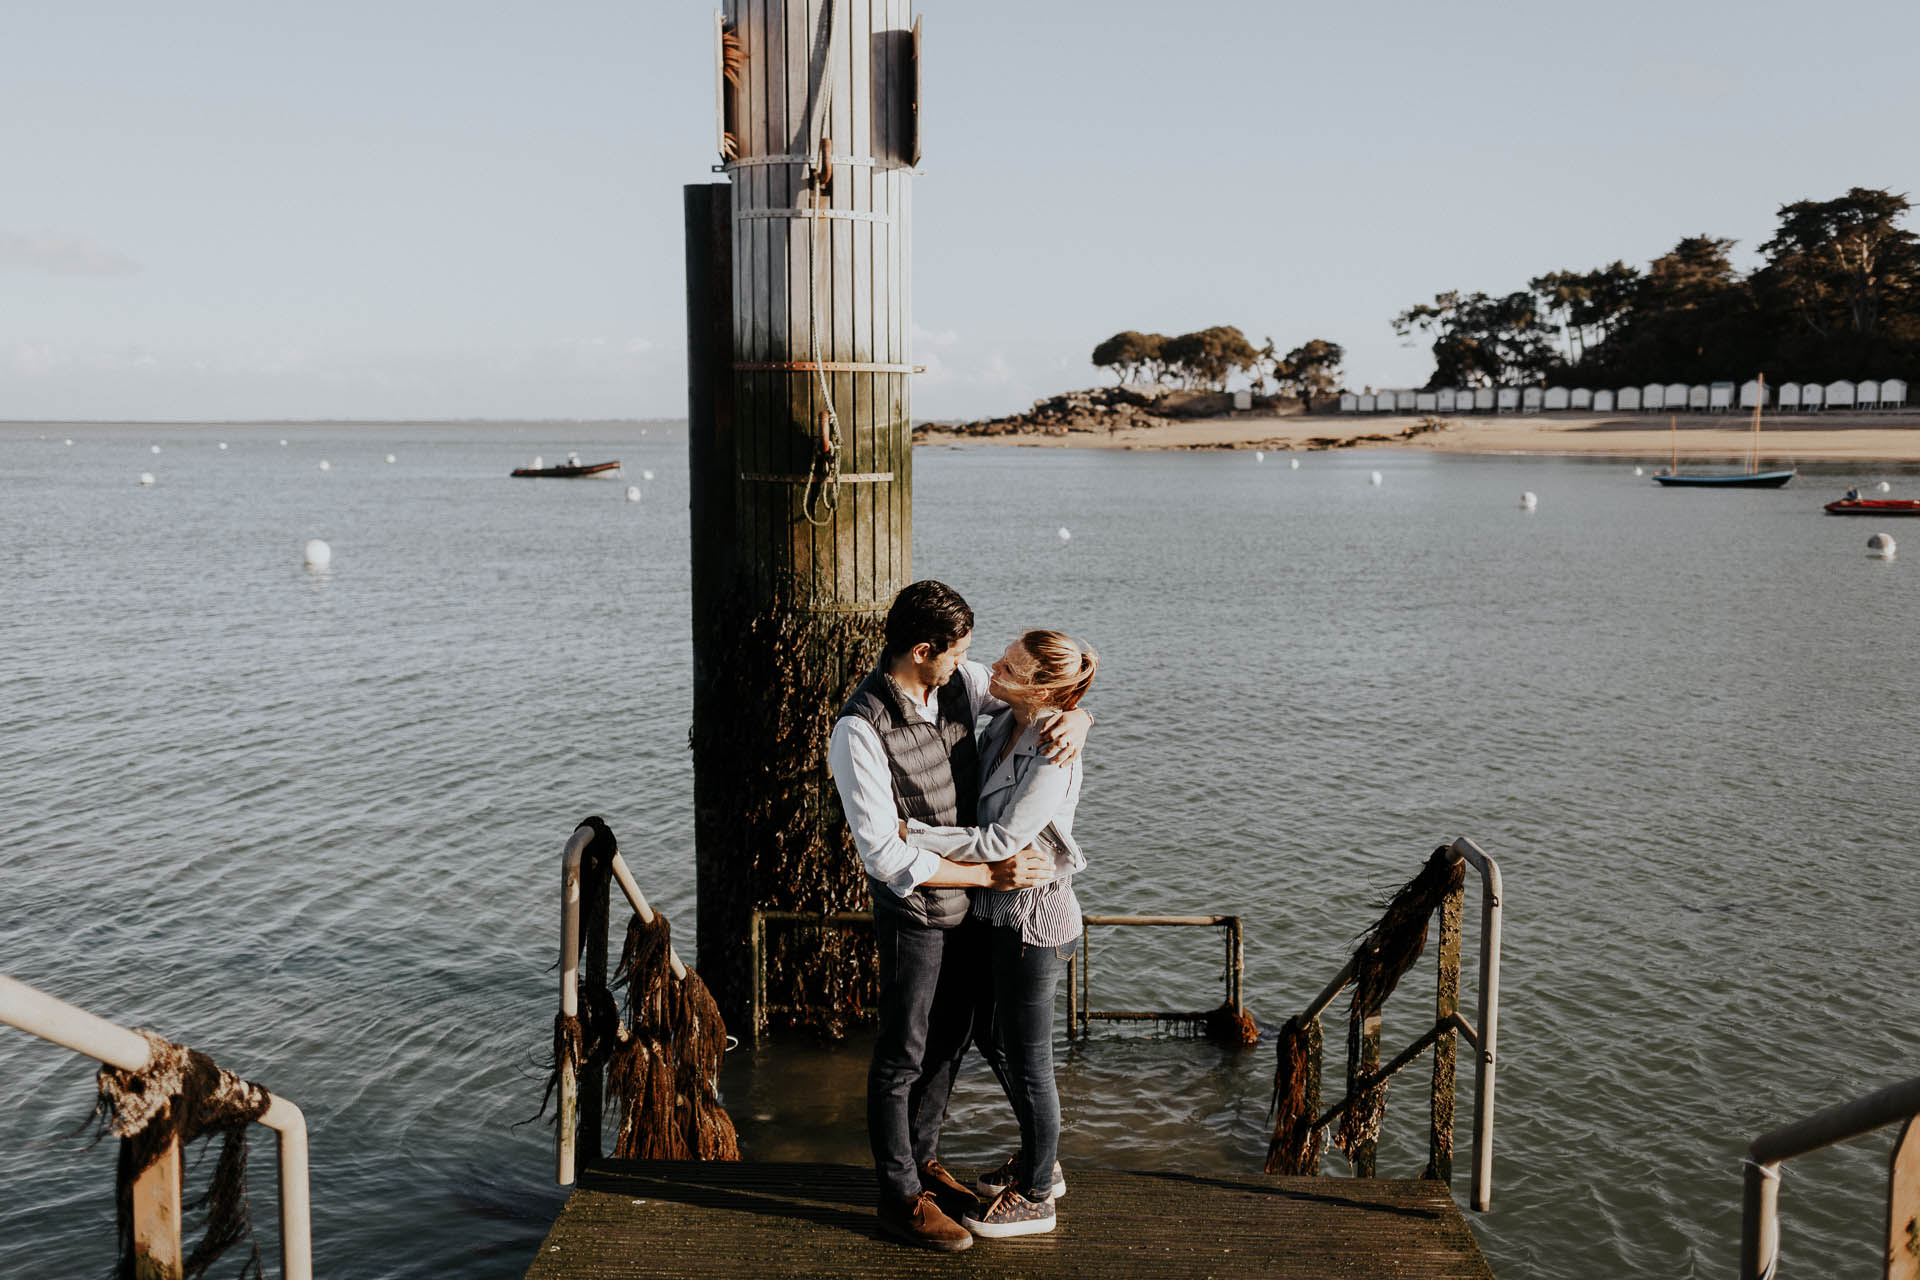 séance_engagement_noirmoutier_flavie_nelly_photographe_nantes-18